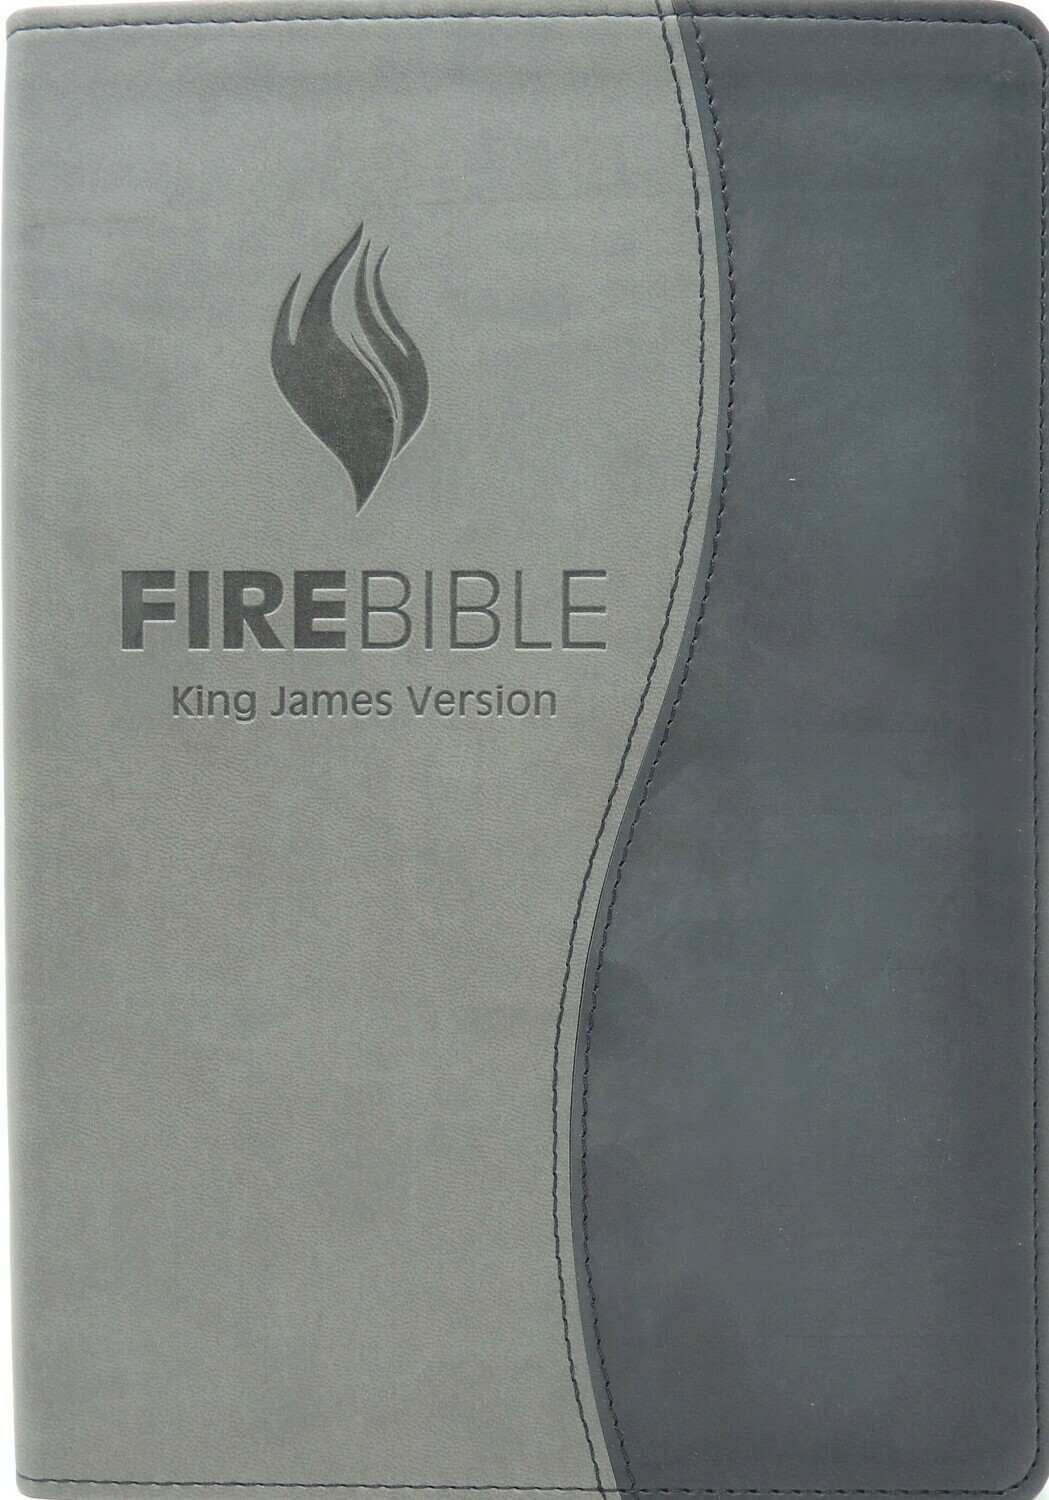 King James Version (KJV) Duo Black/Grey PU (polyurethane) Cover